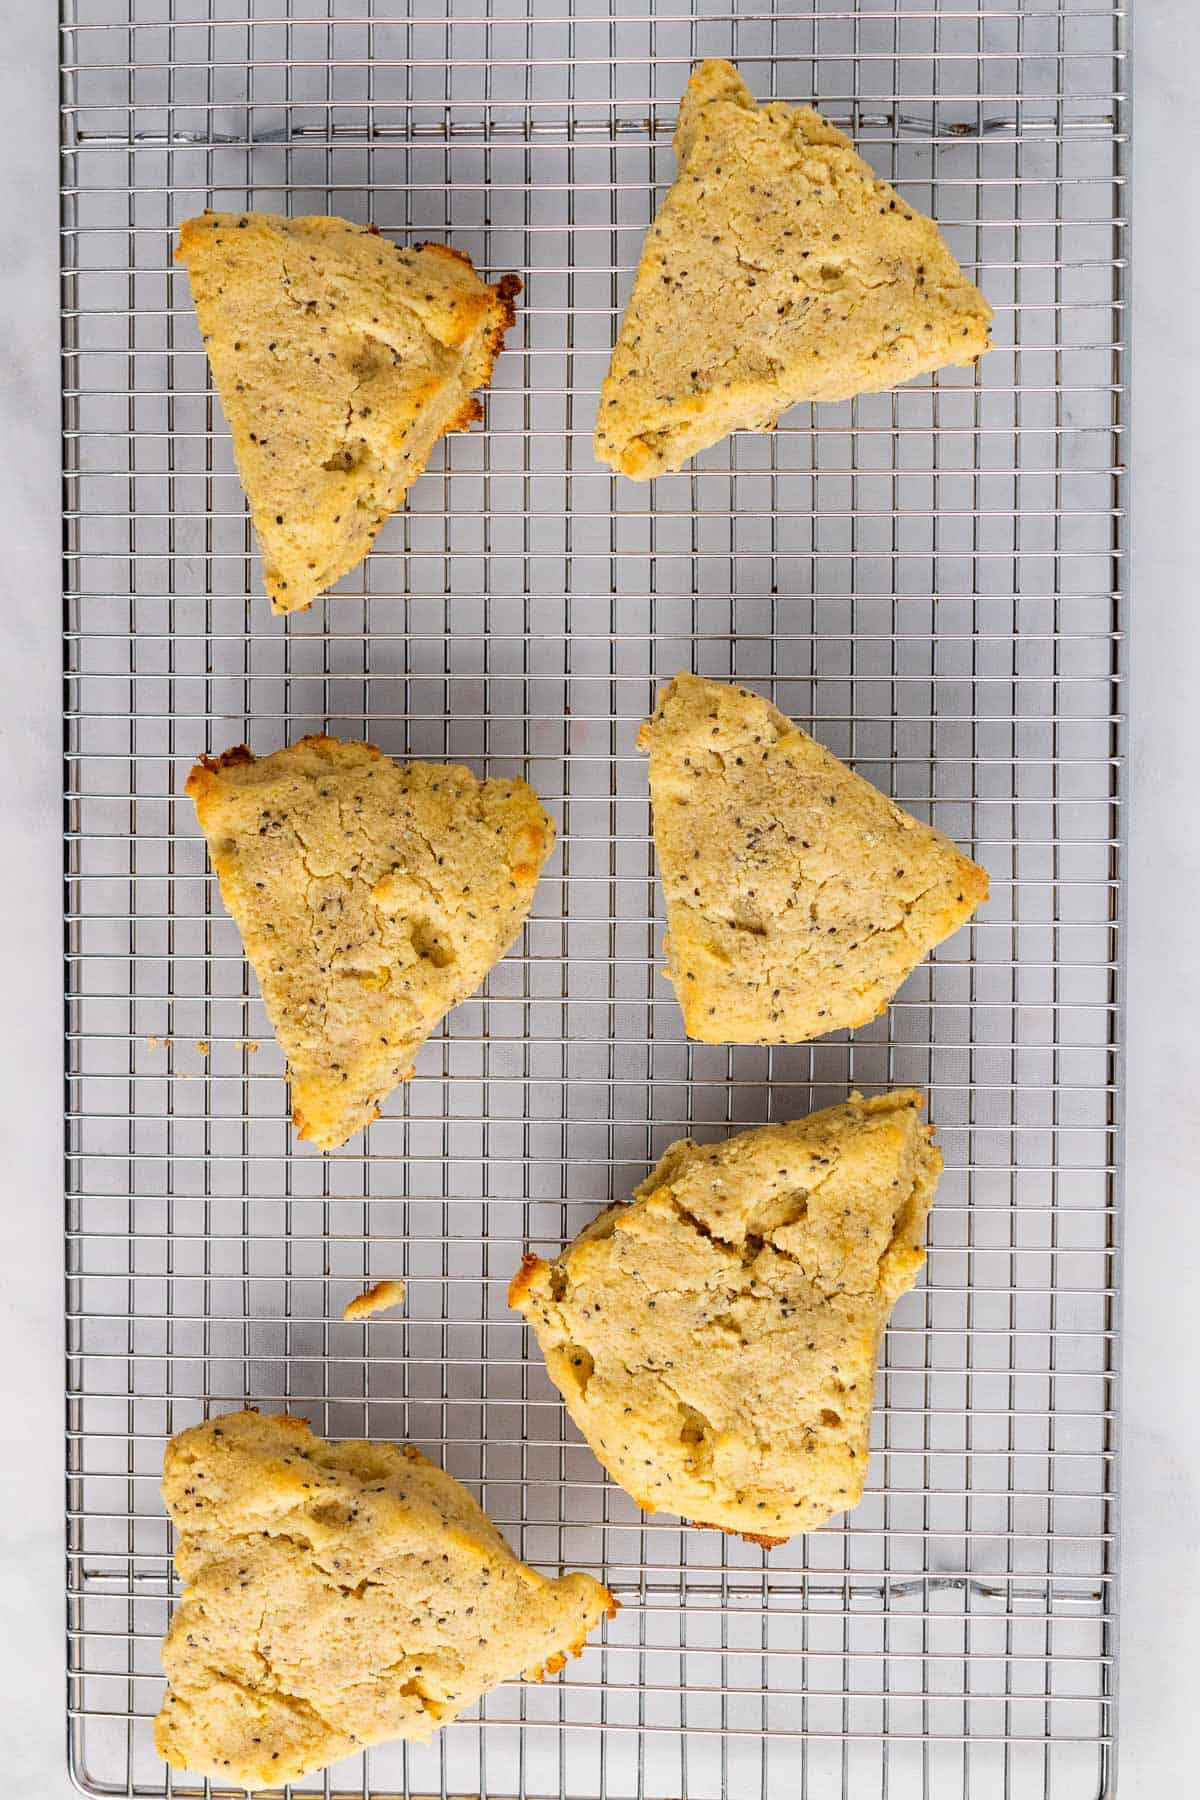 Six scones cooling on a wire rack, as seen from above